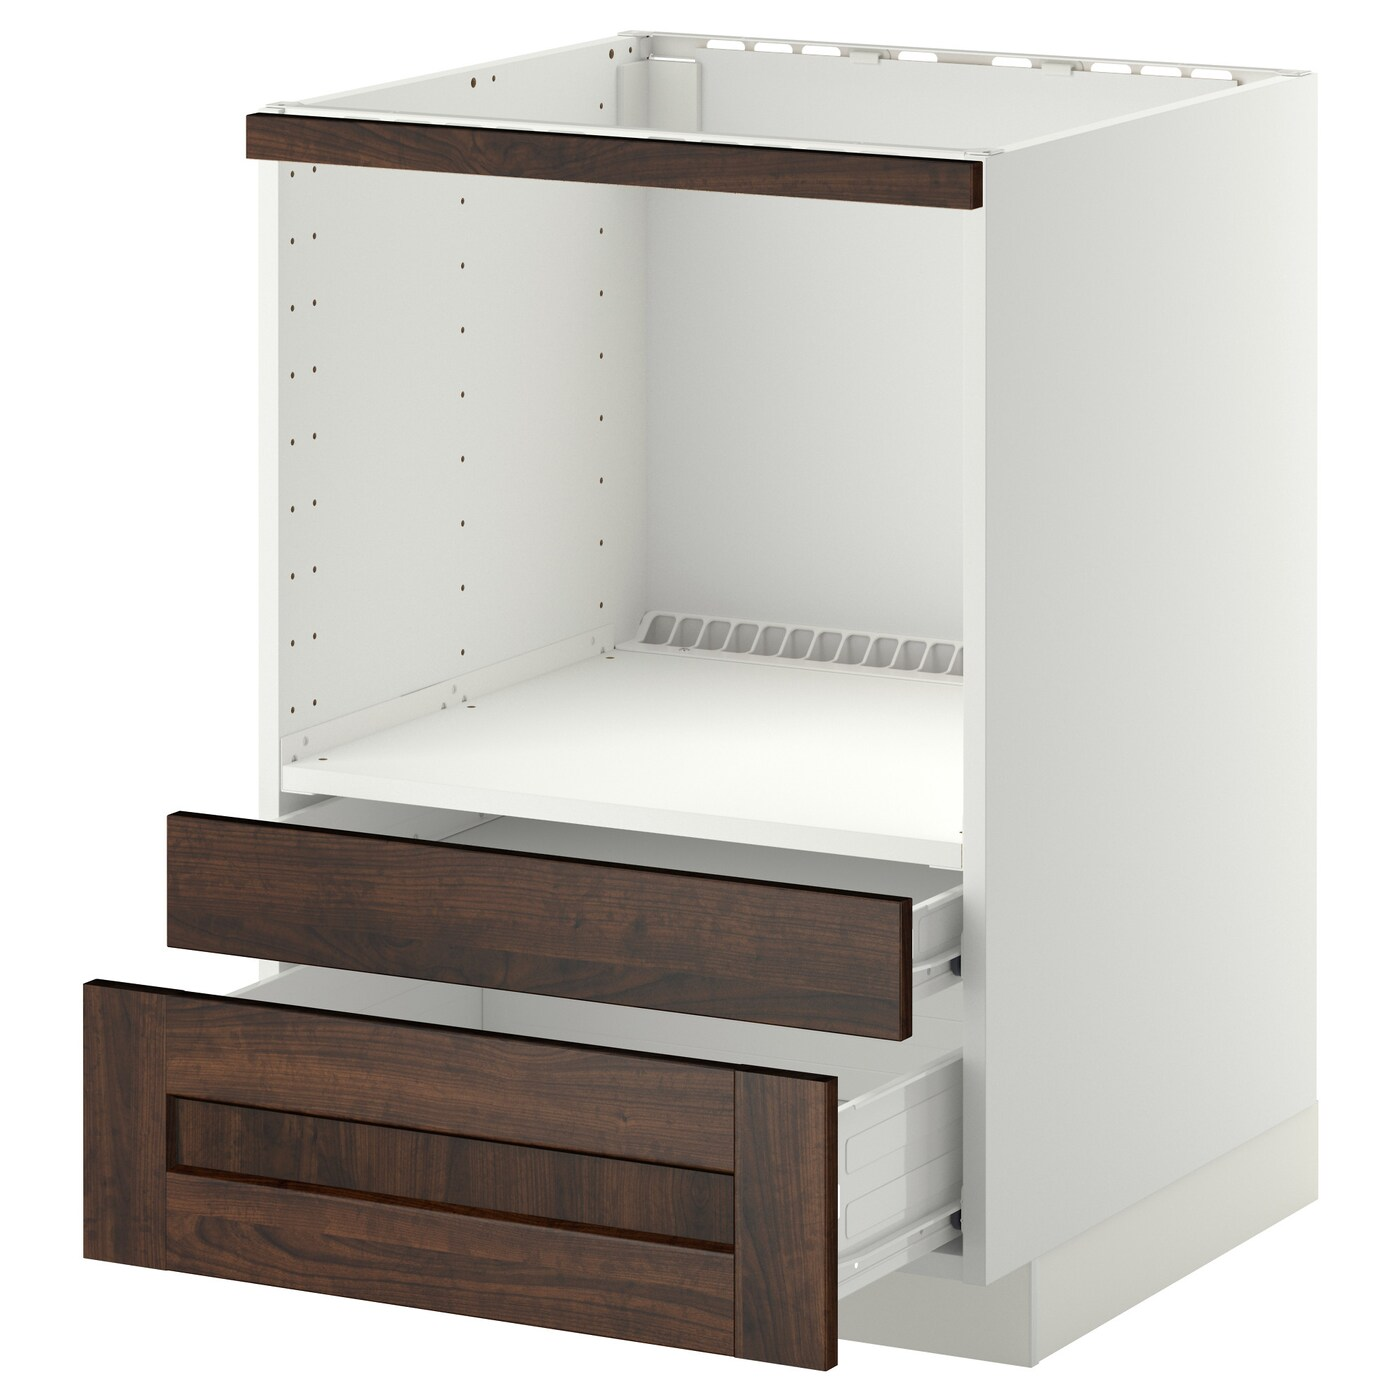 IKEA METOD/FÖRVARA base cabinet f combi micro/drawers Sturdy frame construction, 18 mm thick.